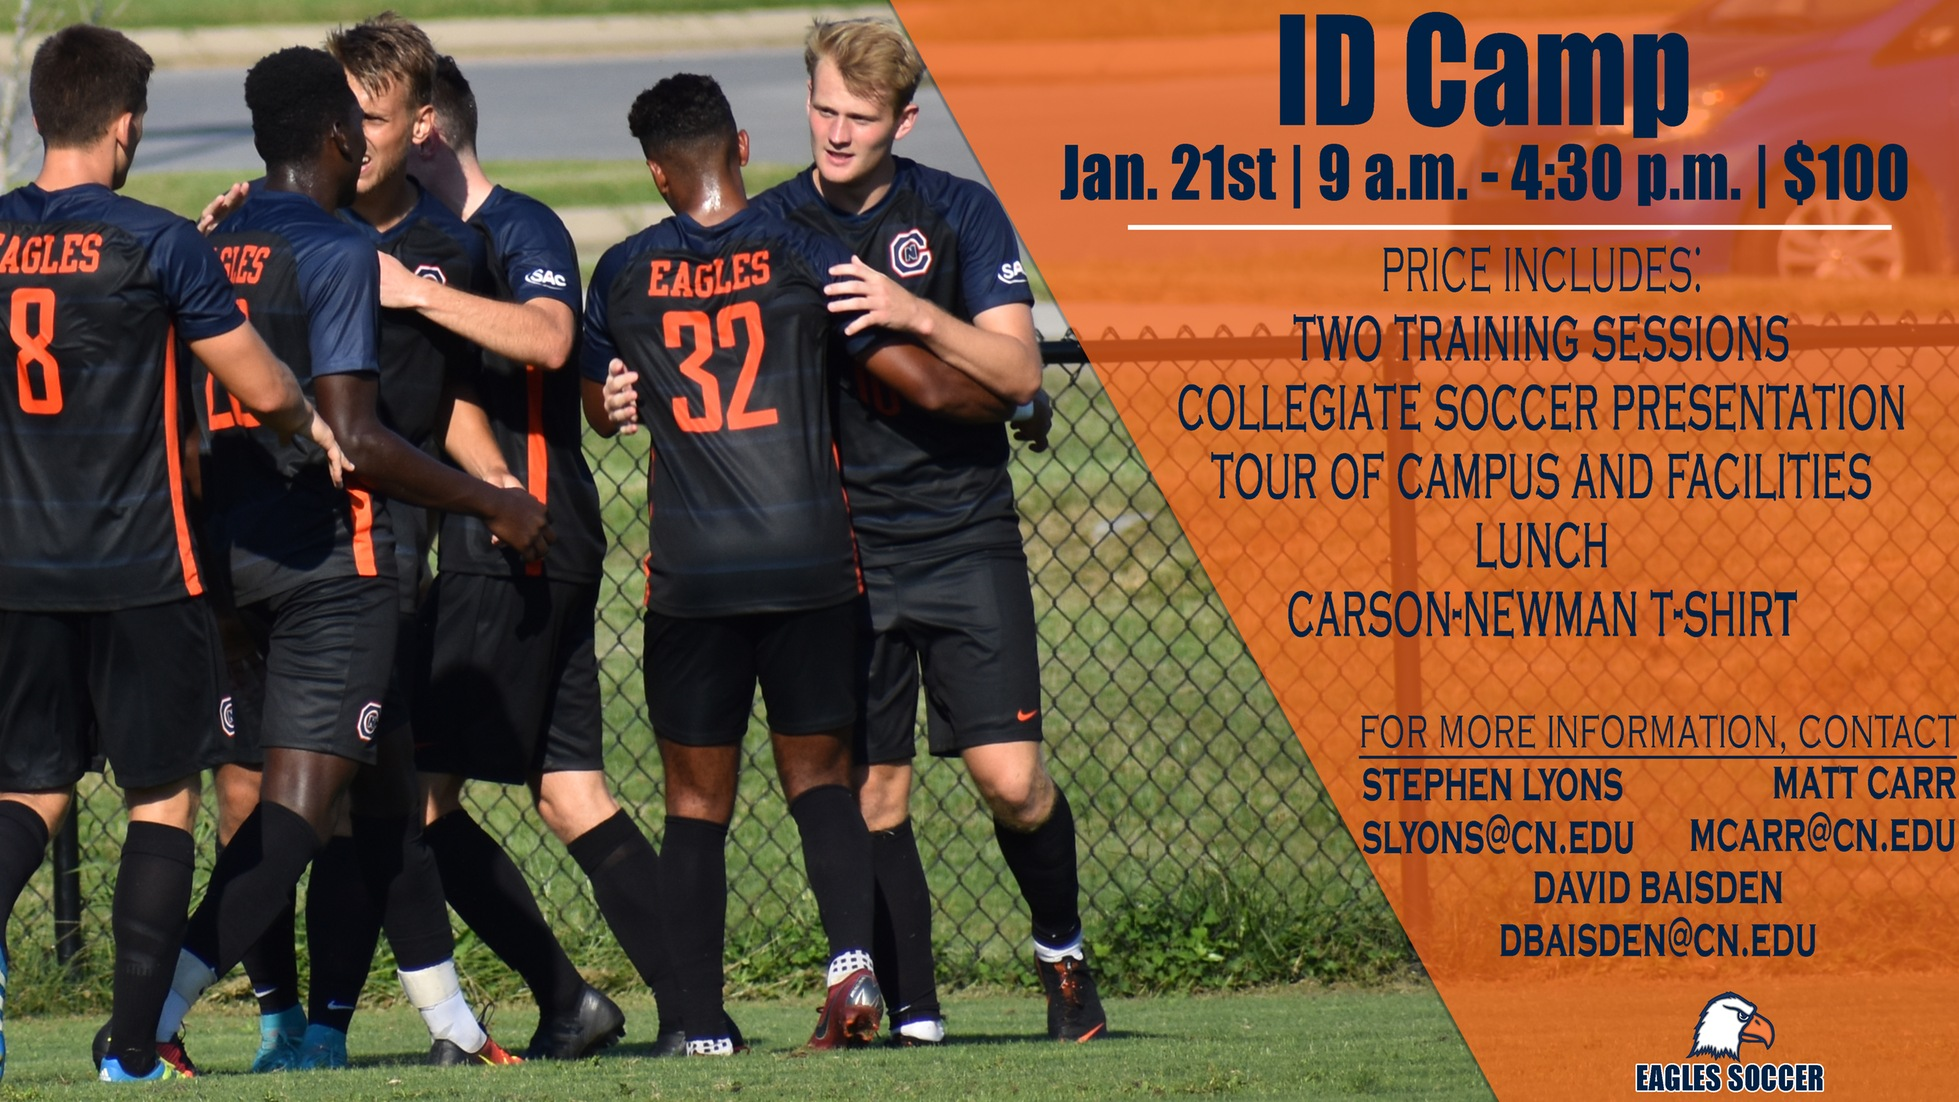 Men's soccer Winter I.D. Camp a month away